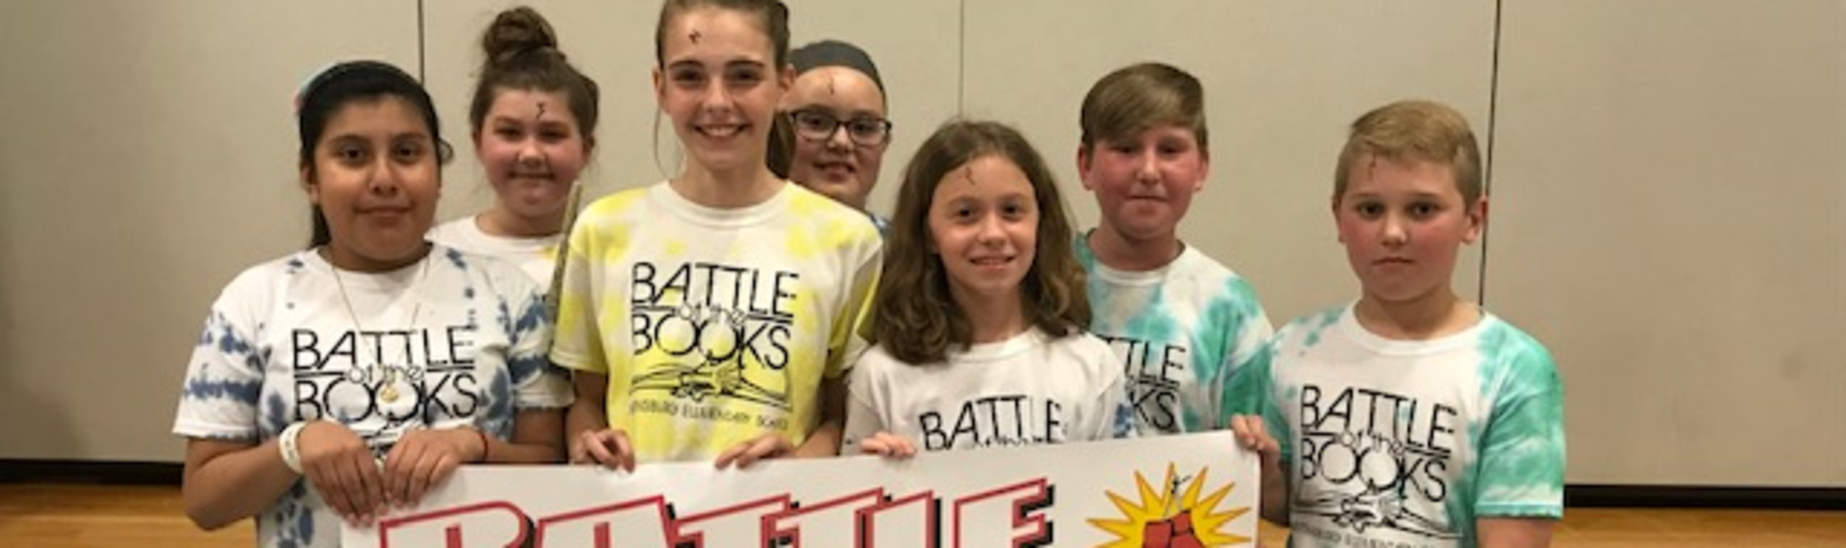 Battle of the Books 3rd Place